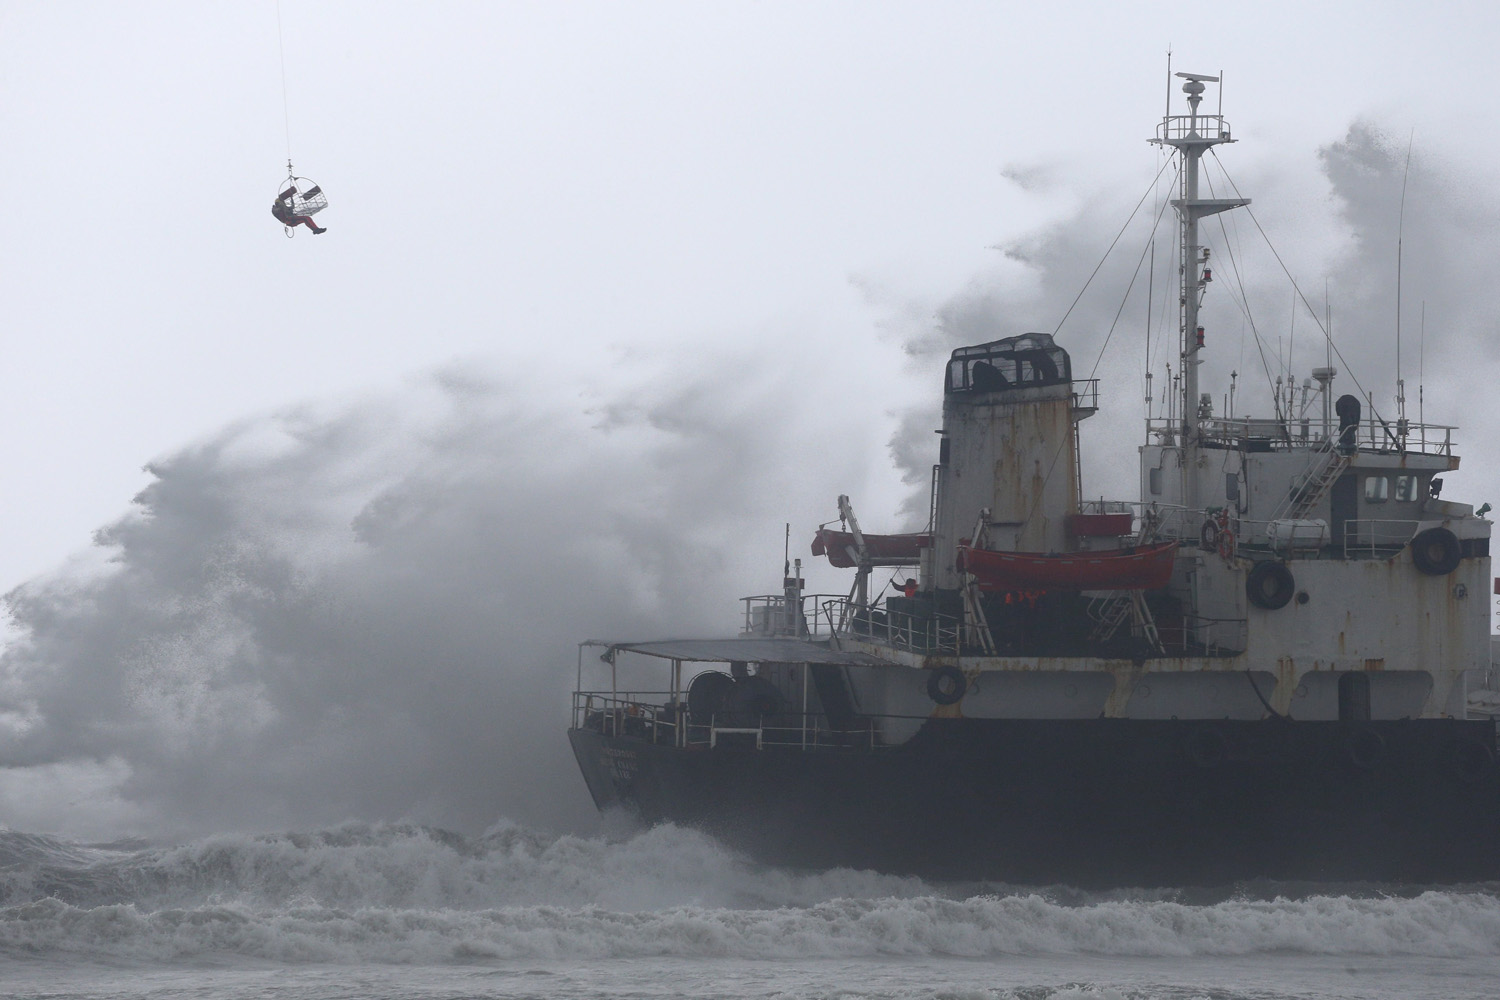 Jul. 23, 2014. A Chinese worker is lifted from a helicopter near the Sheng Chang oil tanker as it runs aground at Kaohsiung harbor as Typhoon Matmo hit.